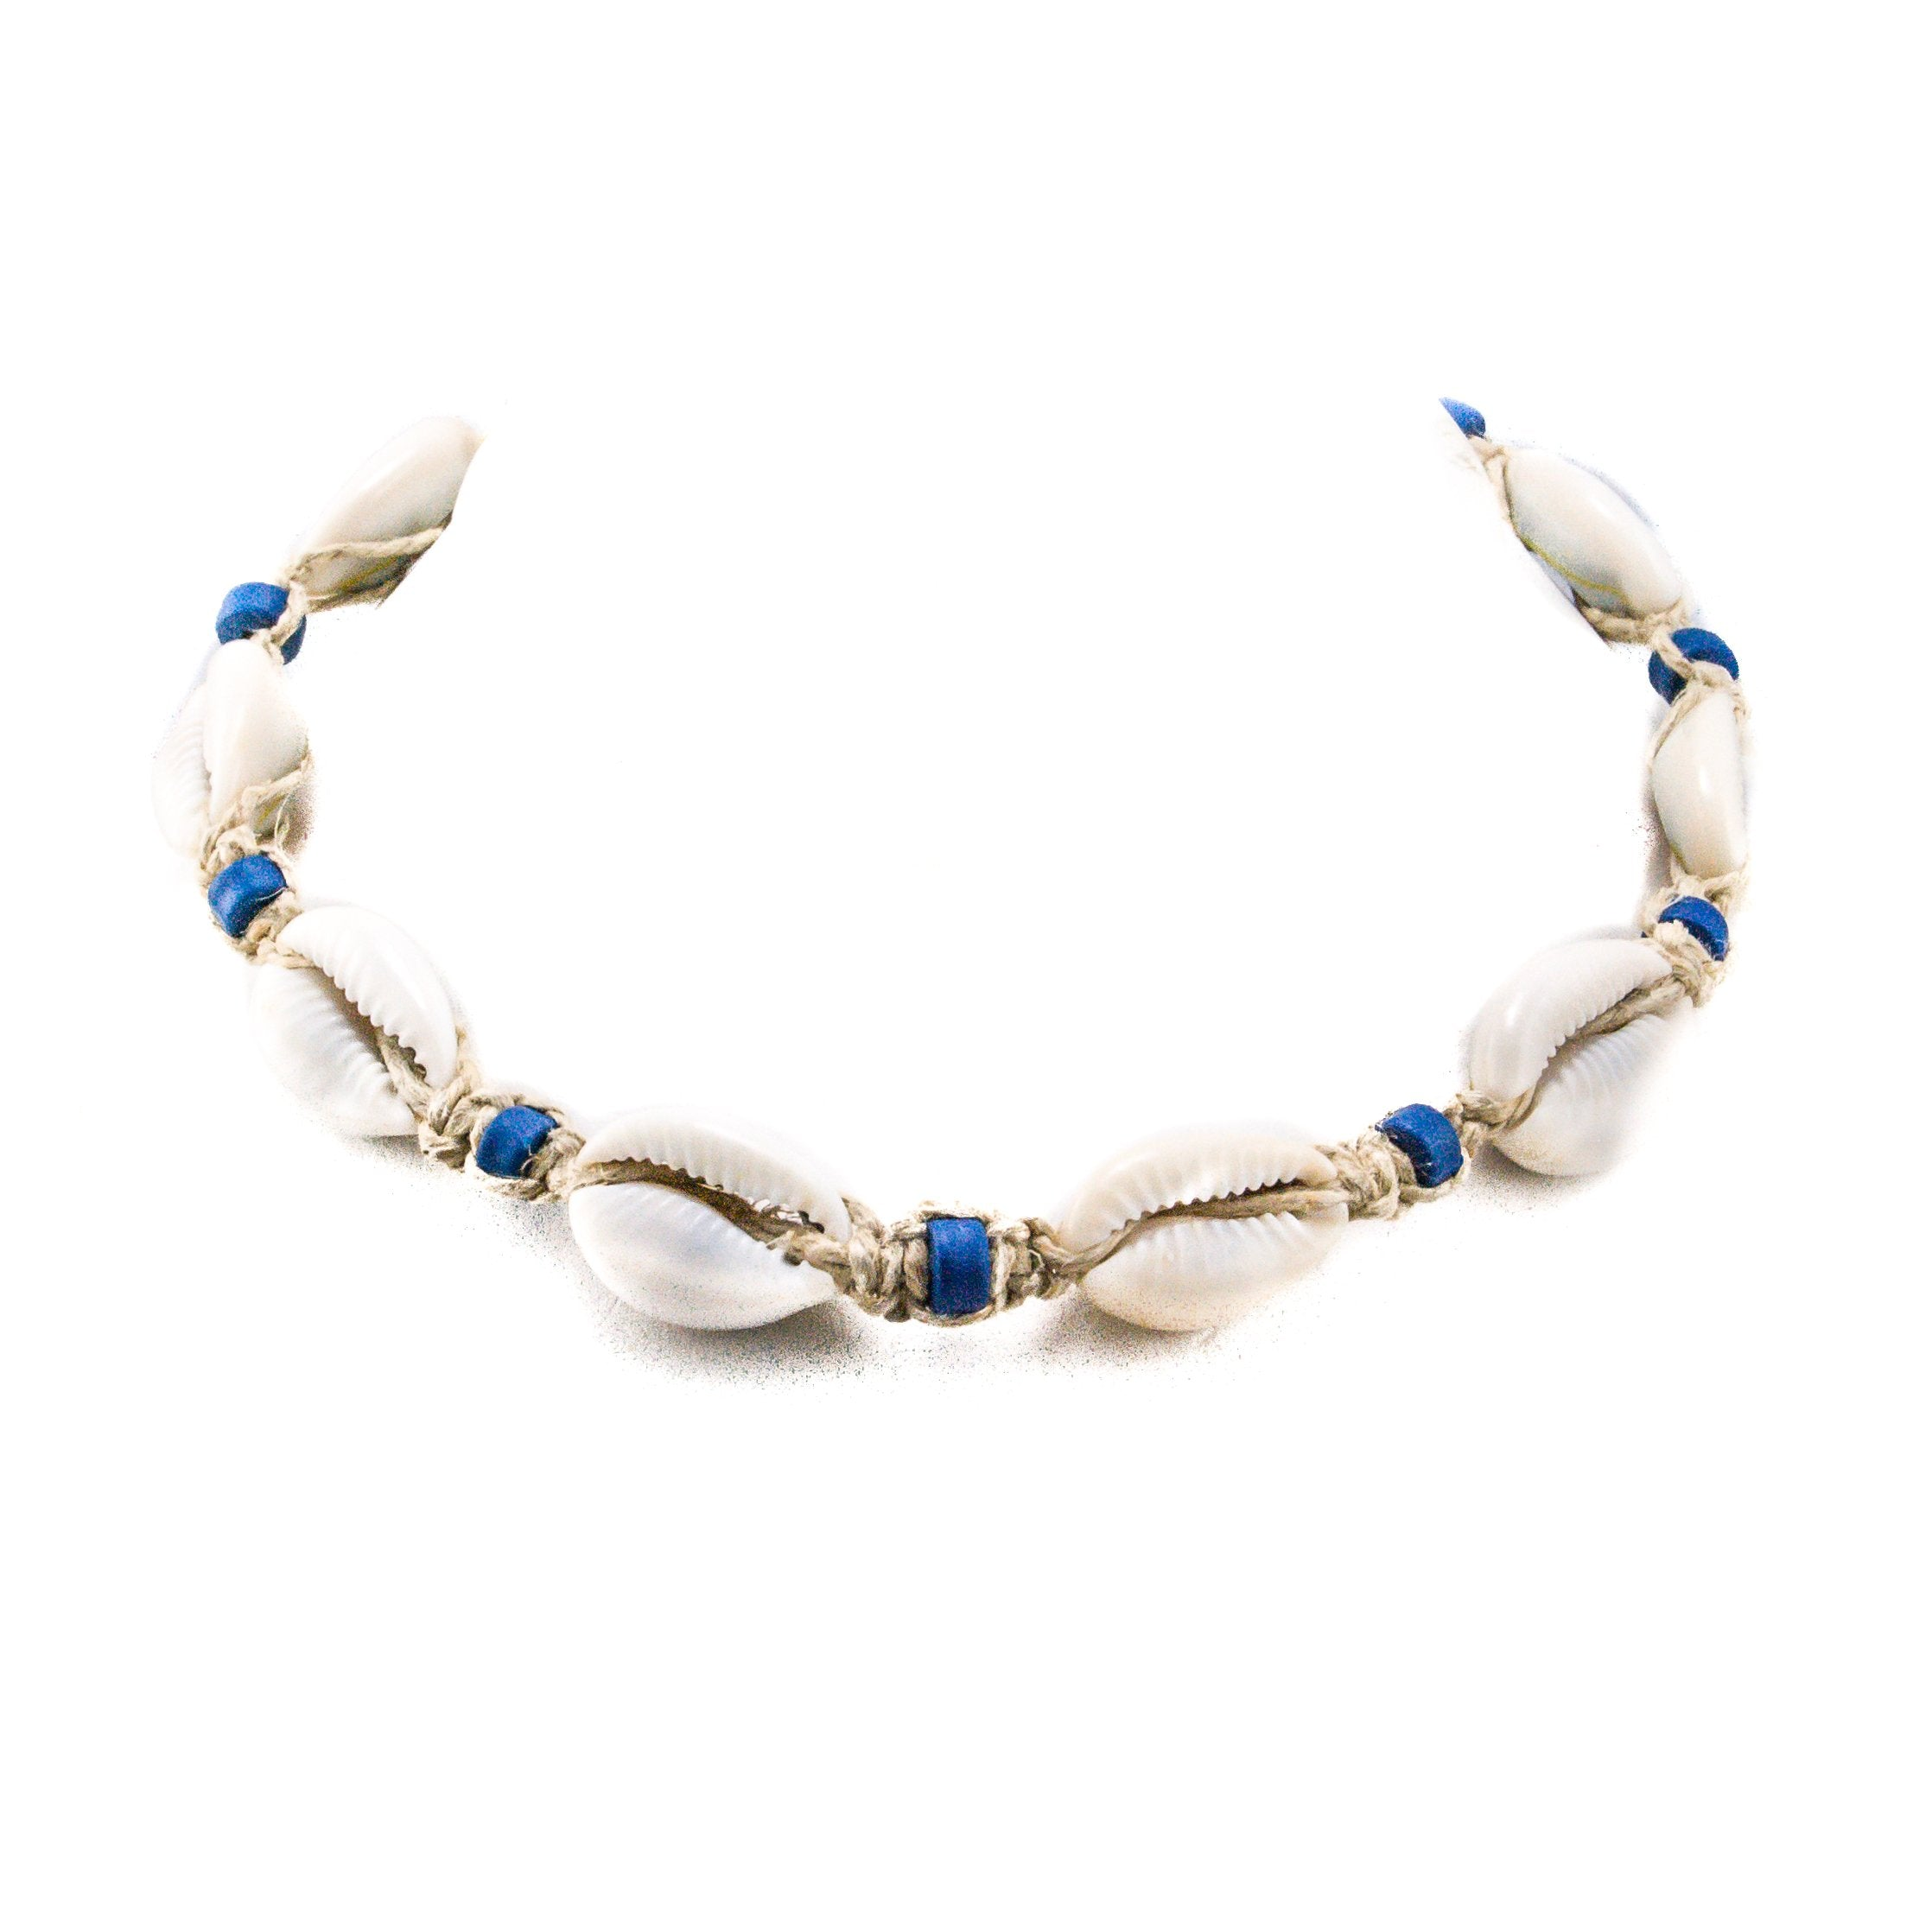 Hemp Choker Necklace with Cowrie Shells and Blue Fimo Beads